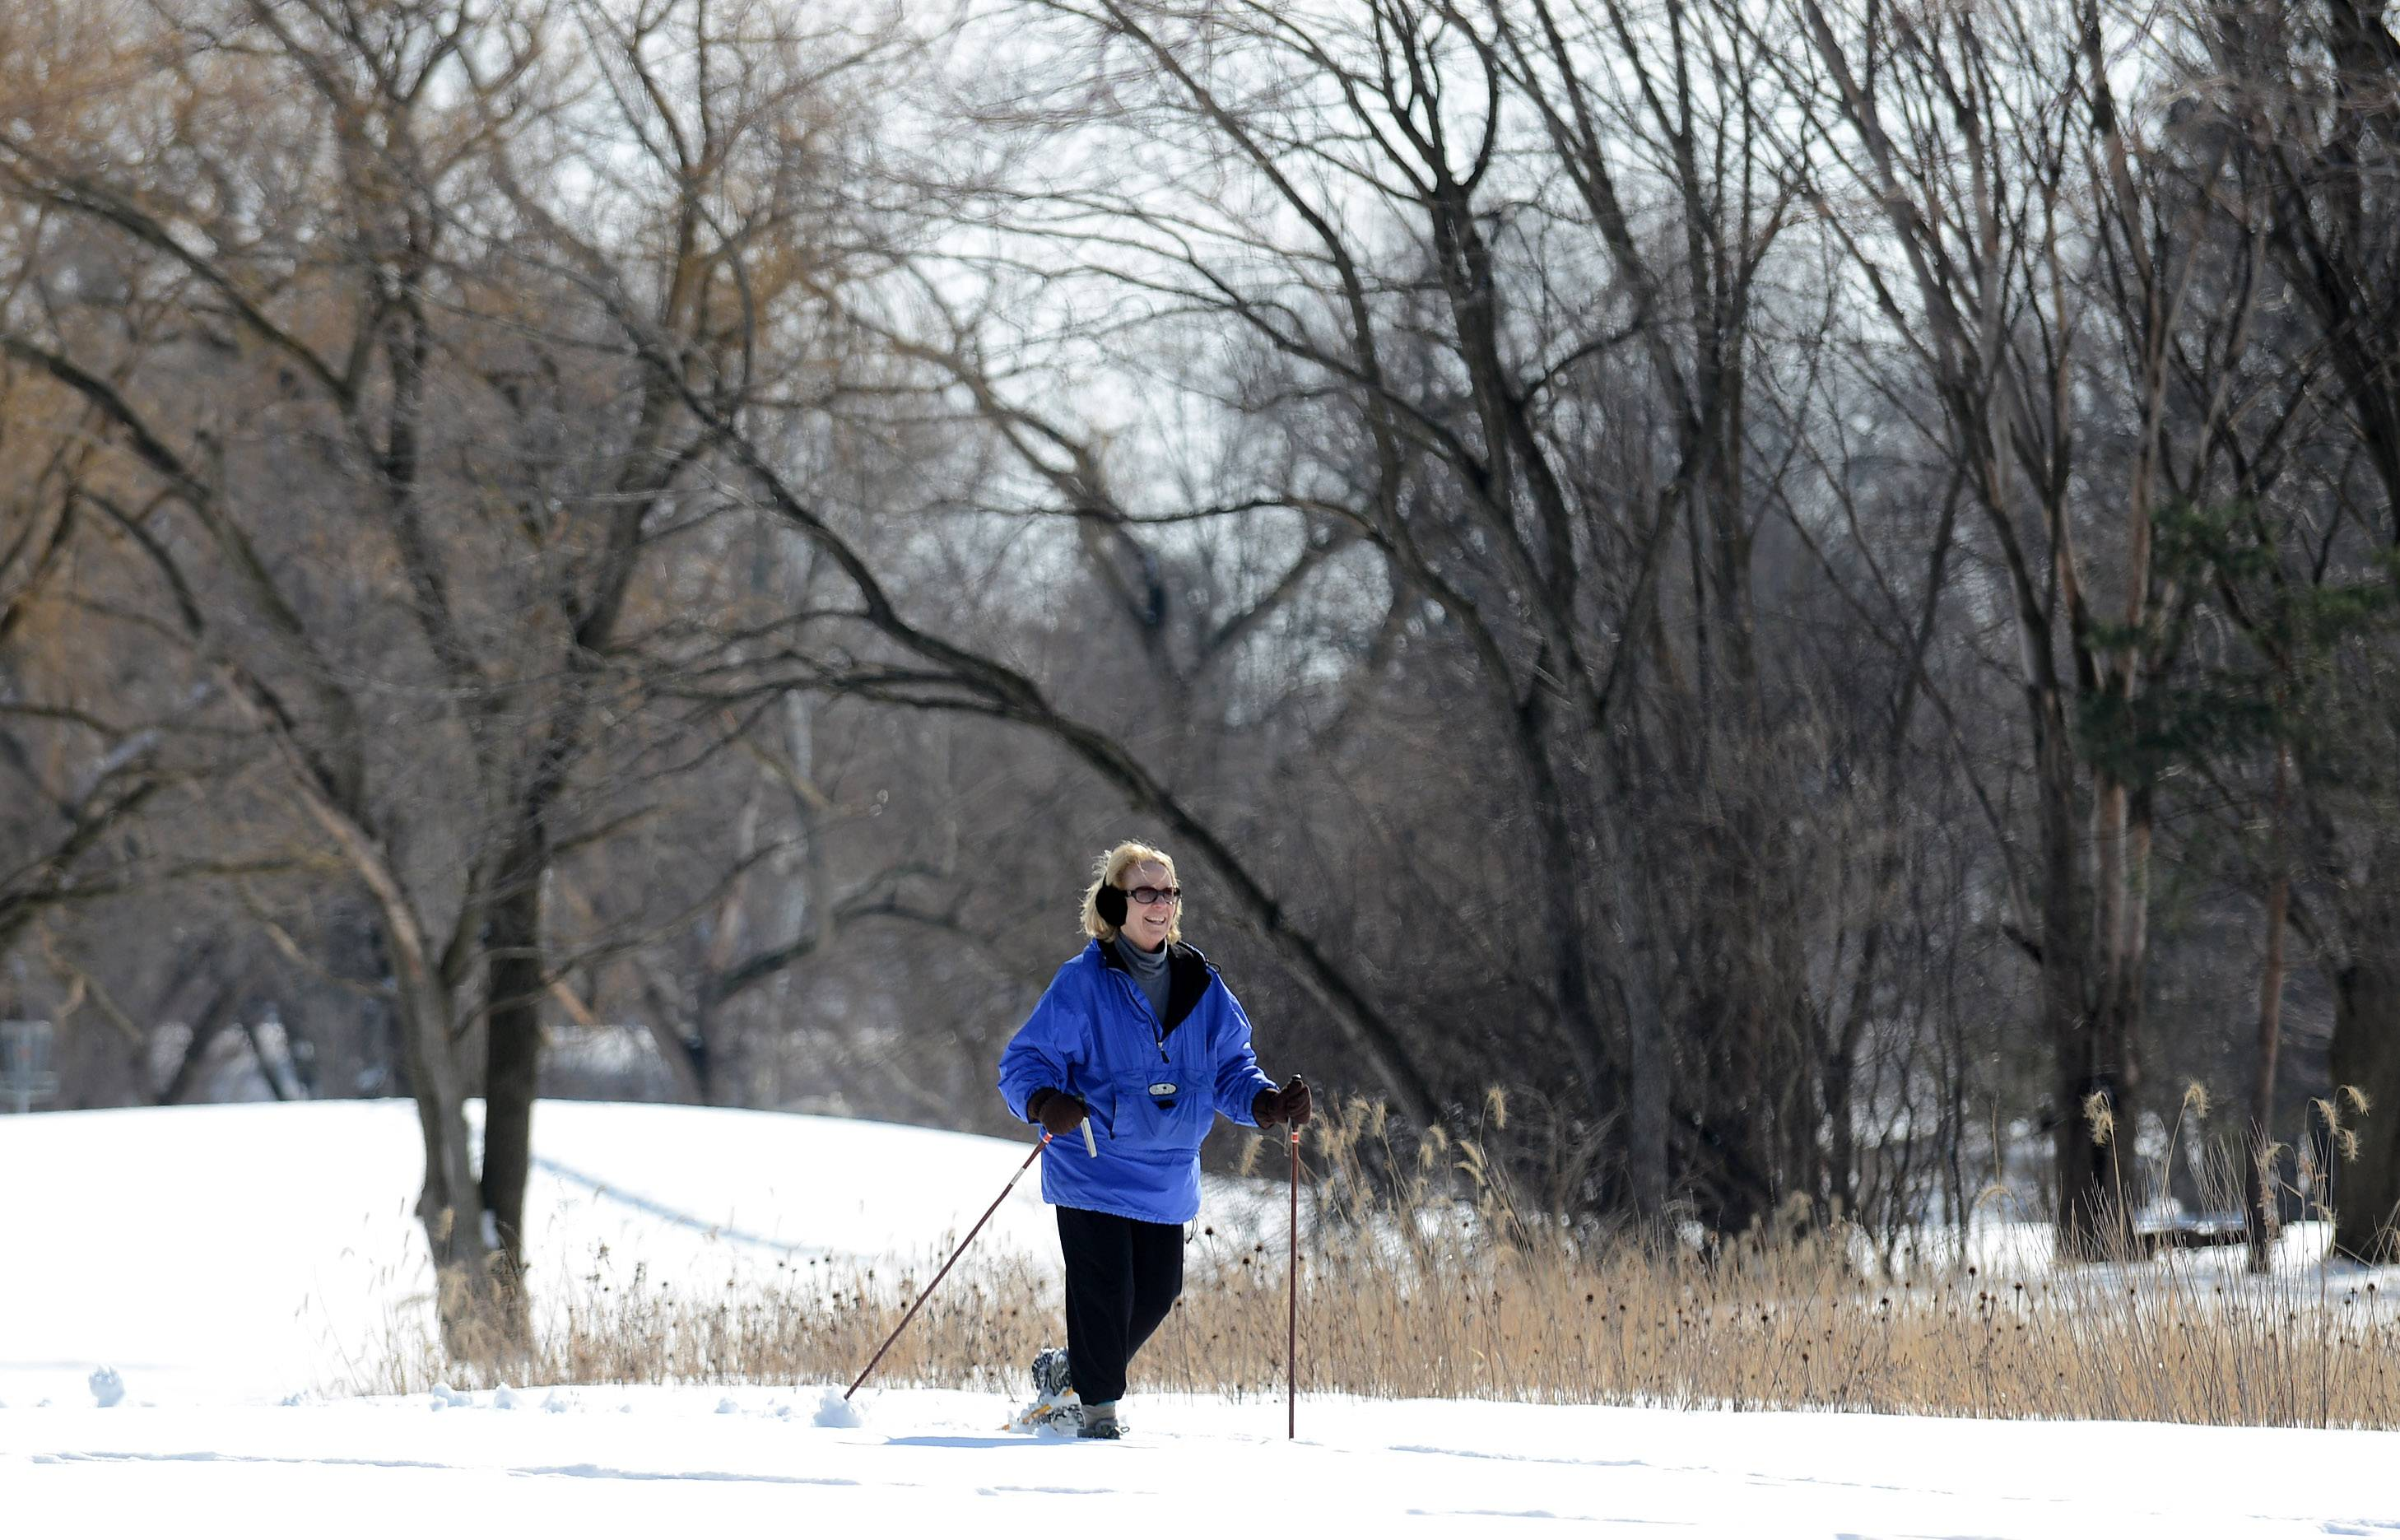 "Joyce Senters, of St. Charles, snow shoes through Wheeler Park in Geneva Tuesday. Tuesday's relatively balmy high in the 40s had Senters all smiles as she trekked through the snow. ""It's so beautiful out with the fresh snow and the blue skies,"" she said. ""What's not to smile about?"""